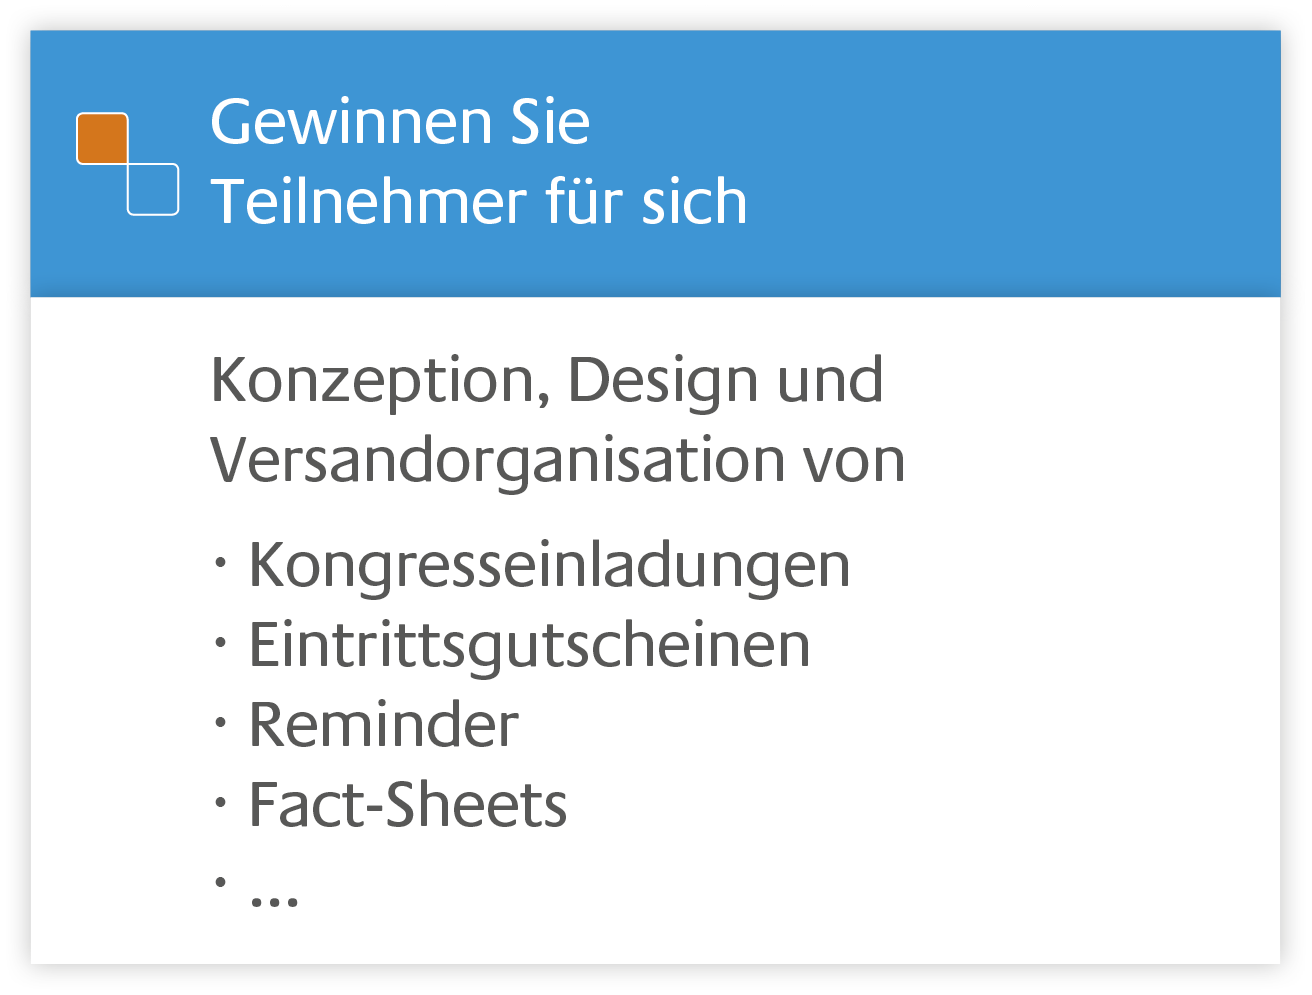 Konzeption, Design und Versandorganisation